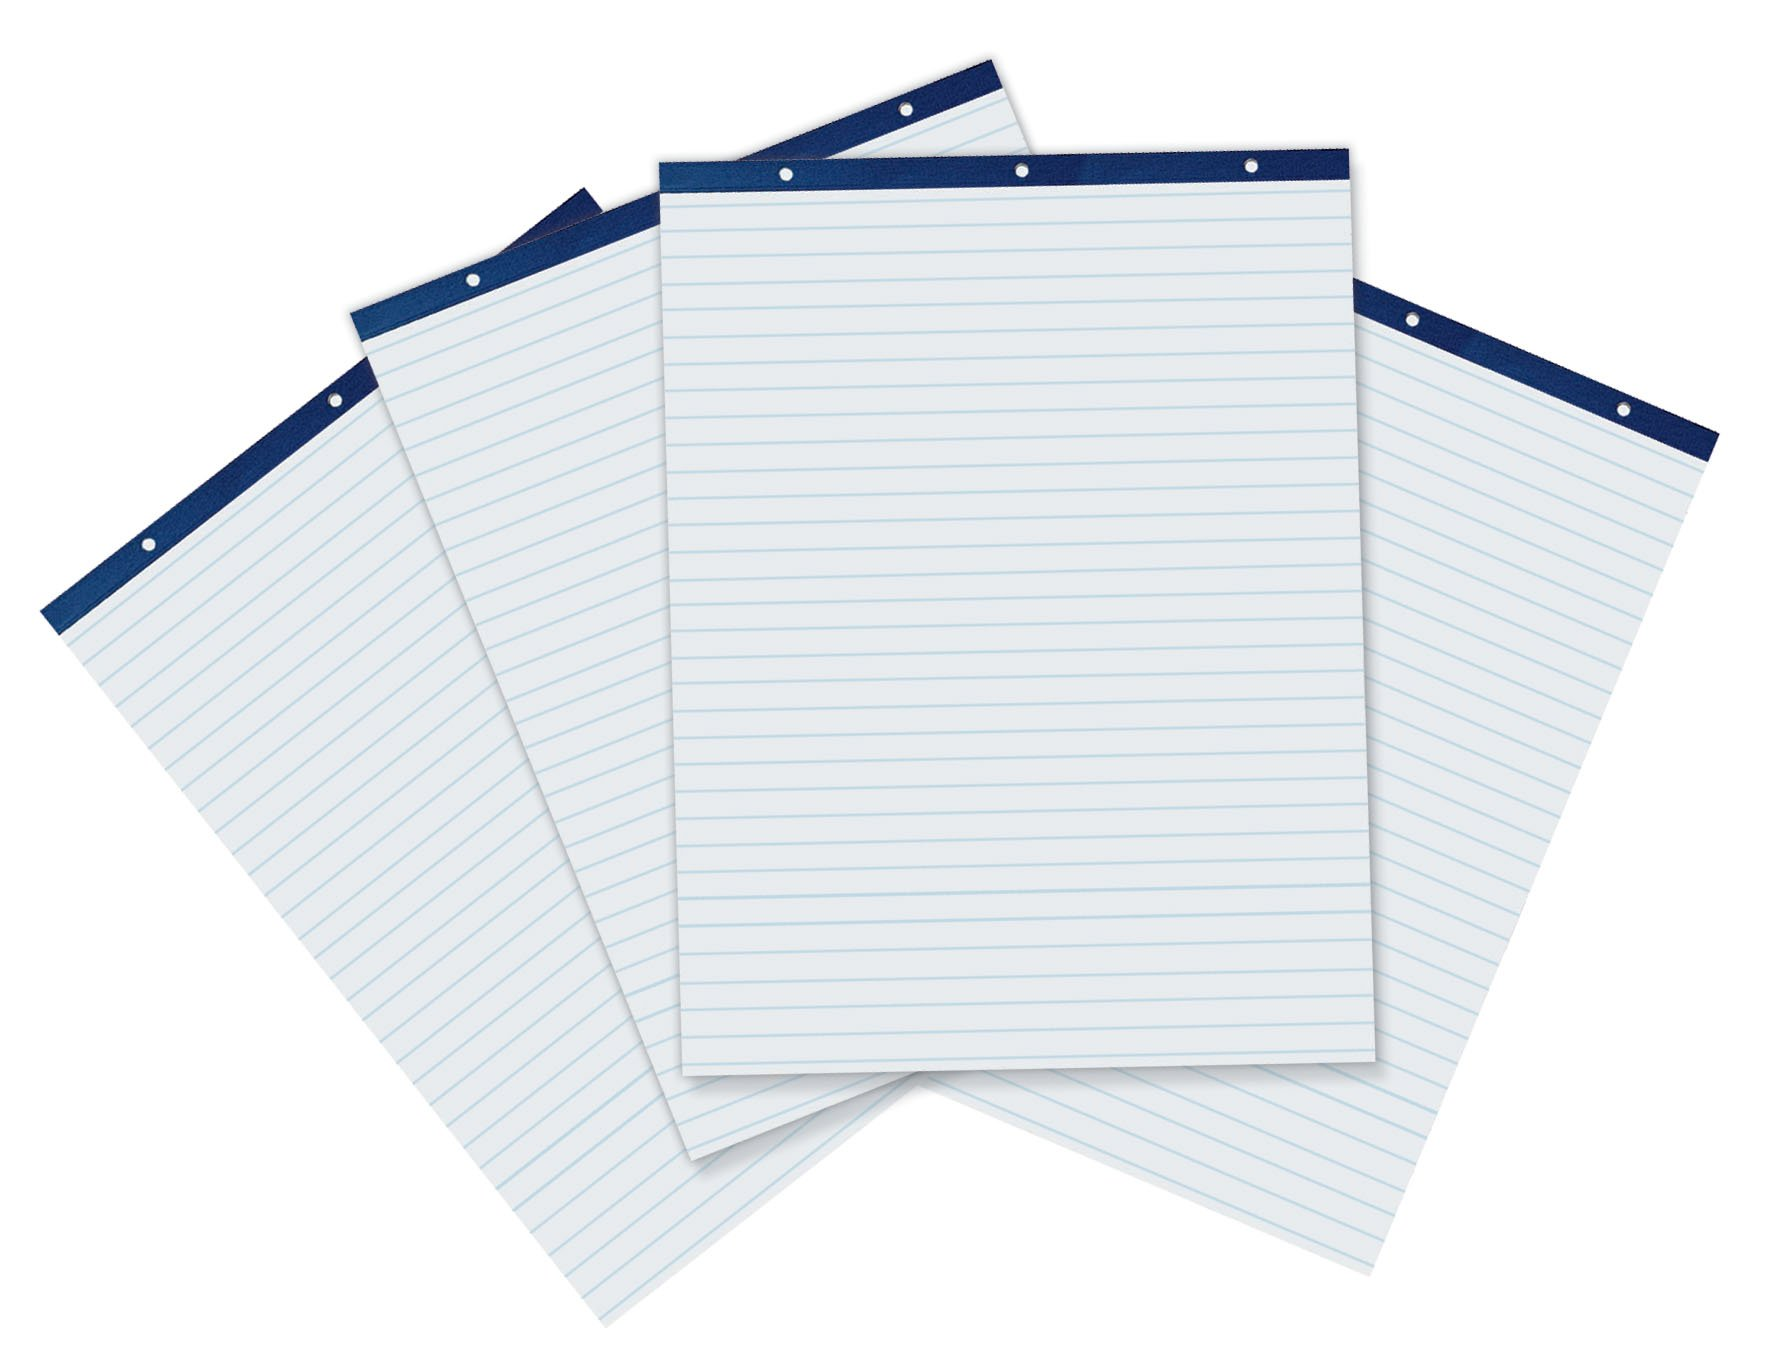 Pacon Easel Pad, 27''X34'', 1'' Ruled, 50 Sheets, 4 Pads Per Case by PACON